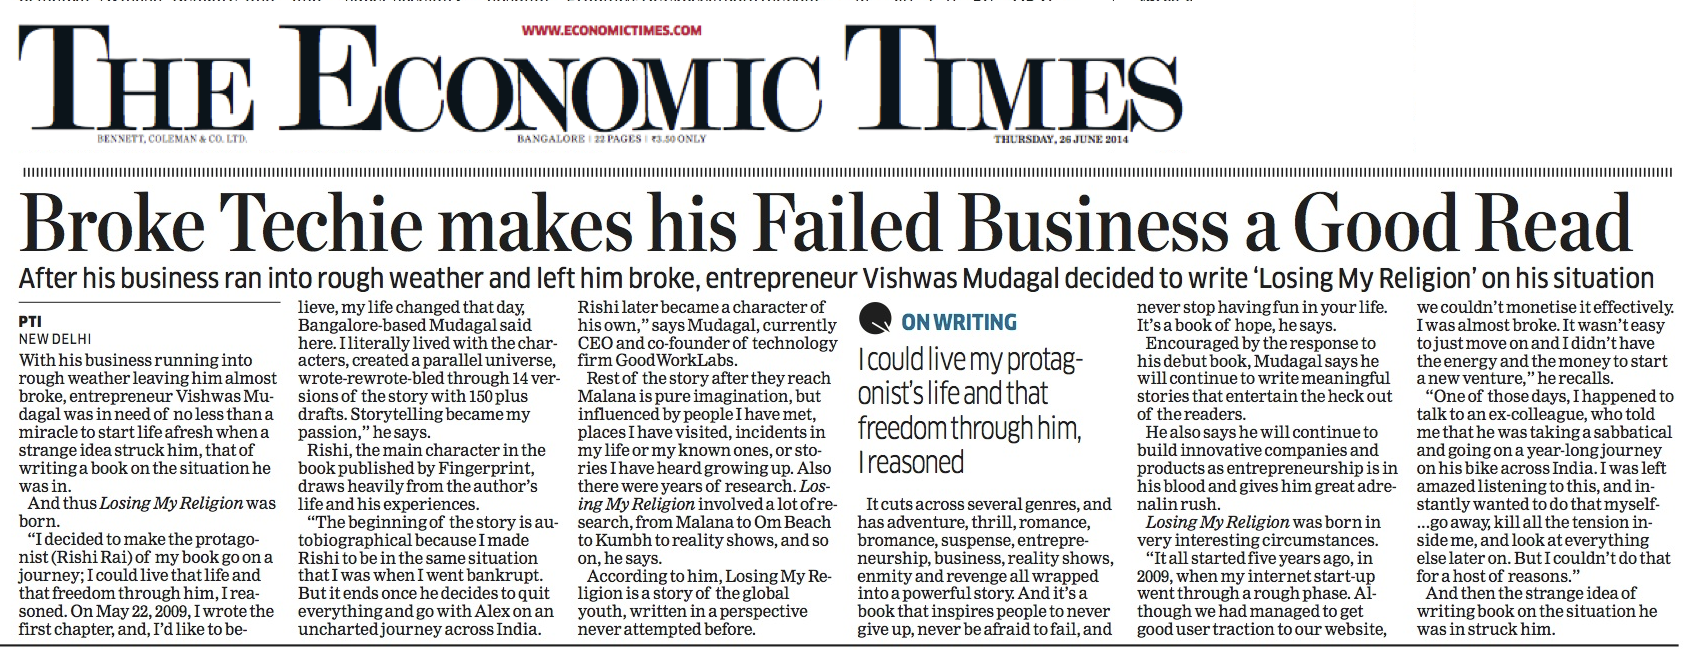 Economic Times covered